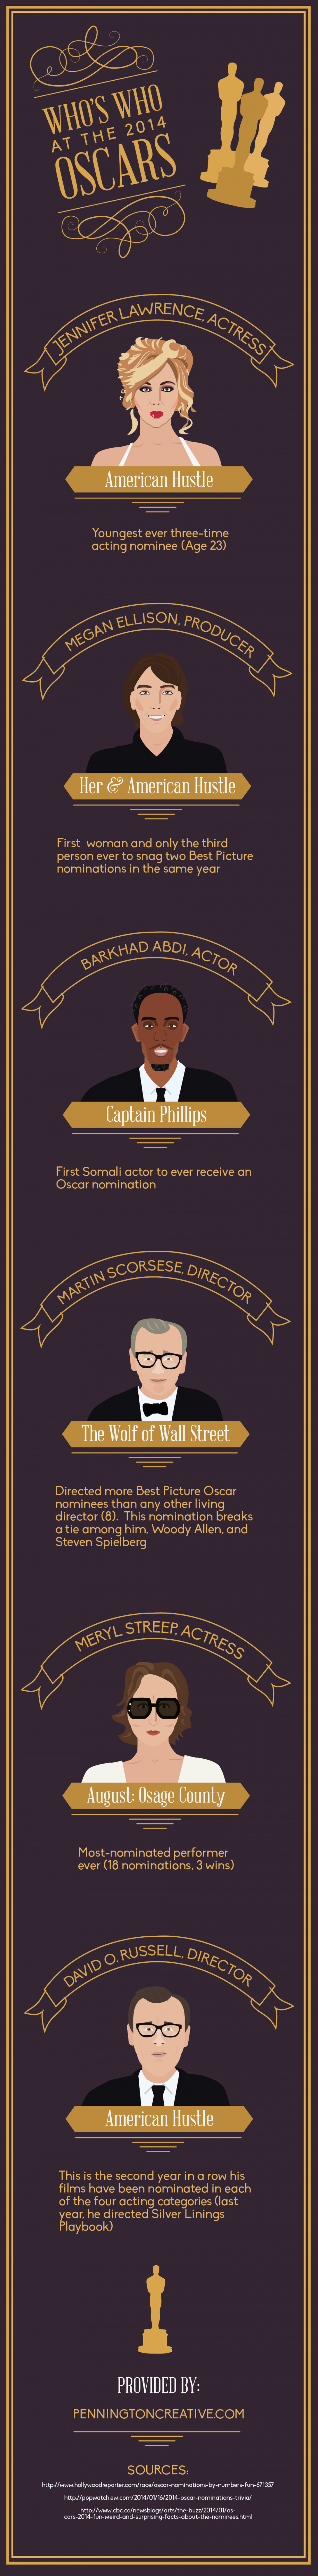 Who's Who at the 2014 Oscars Infographic